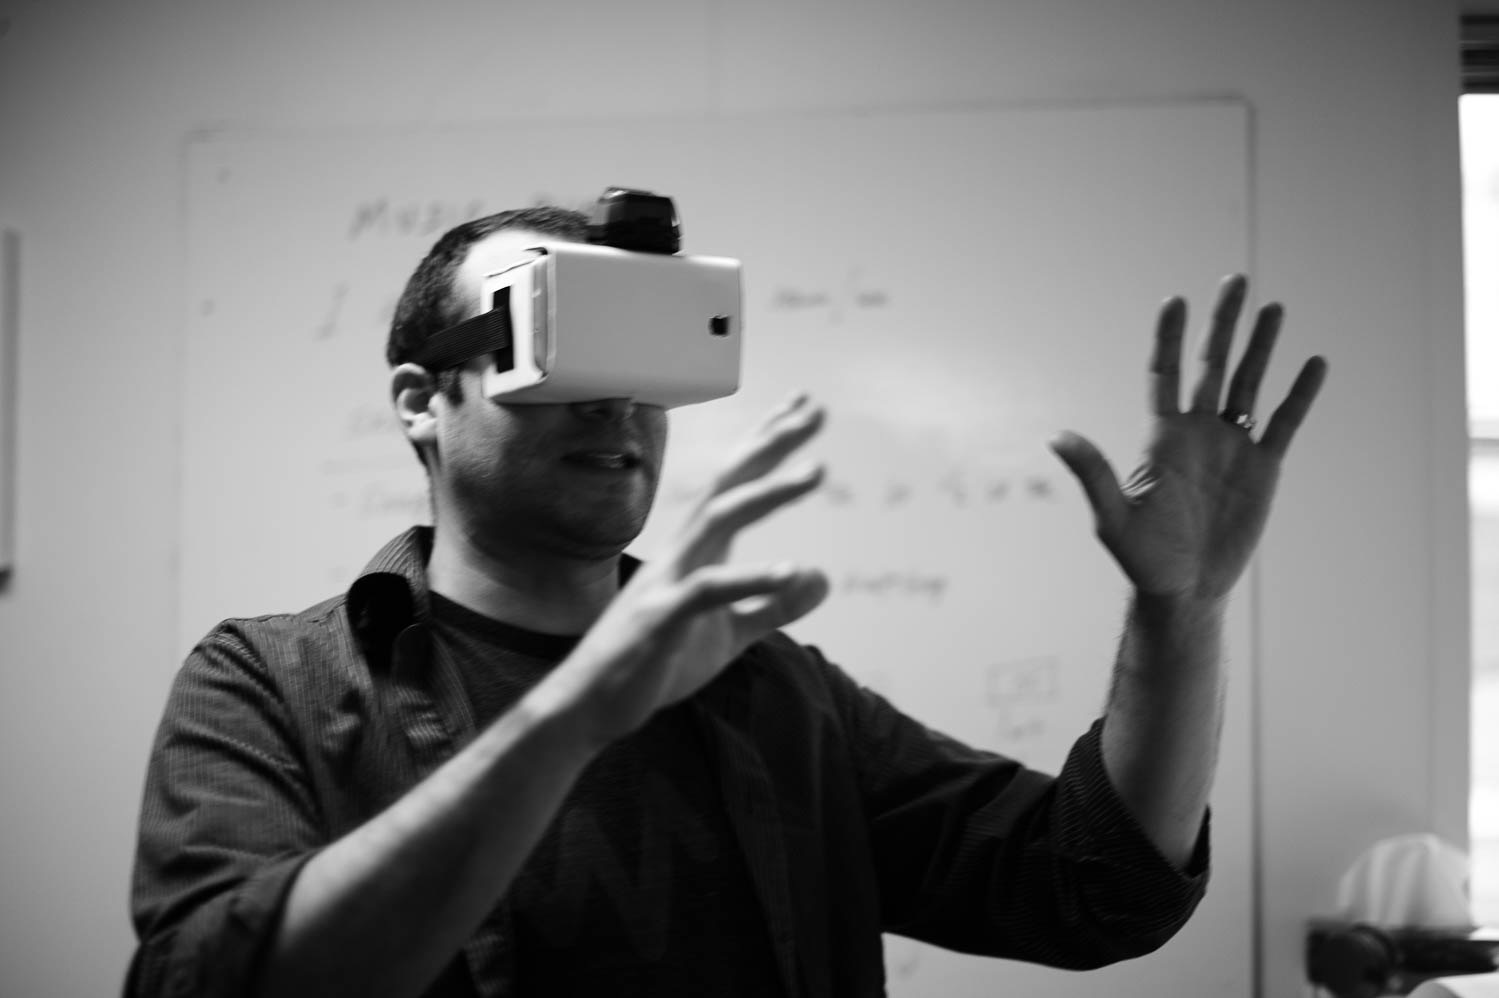 iBec designer, Matt Smith, holds his hands out in front of him while using Google's cardboard VR headset